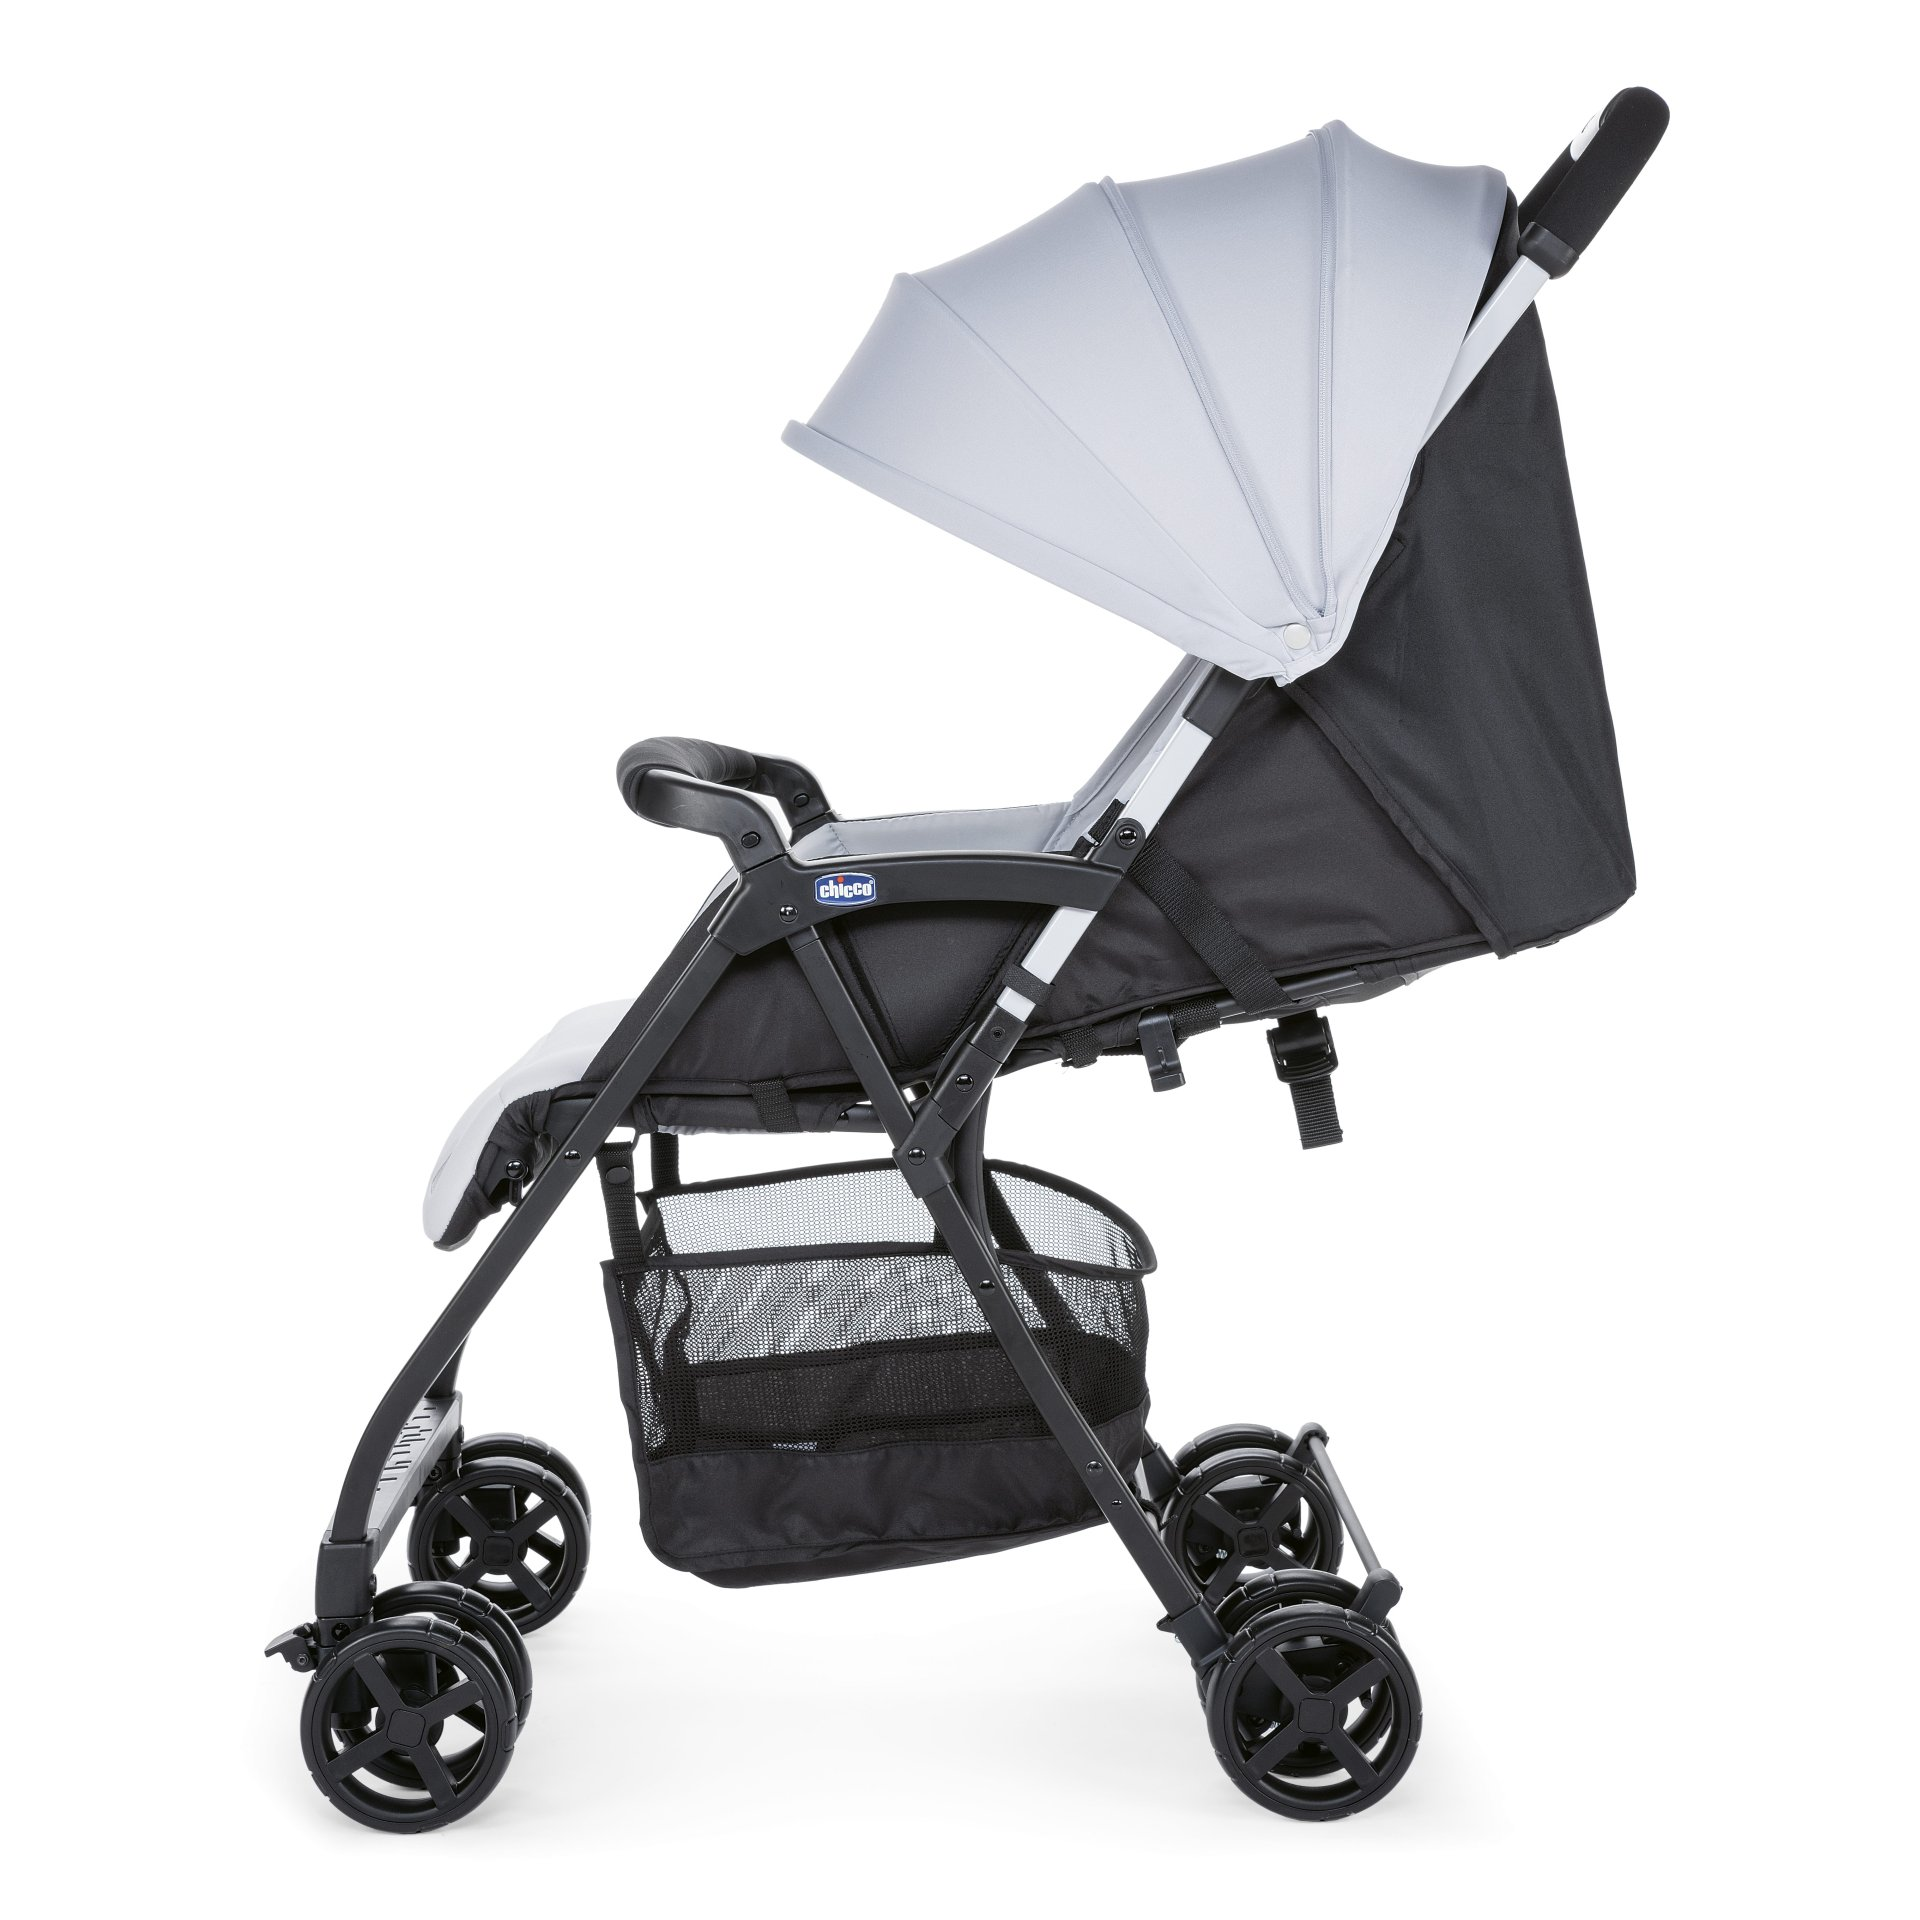 Chicco Ohlala Baby Stroller Tropical Jungle Lightweight ON SALE was £110!